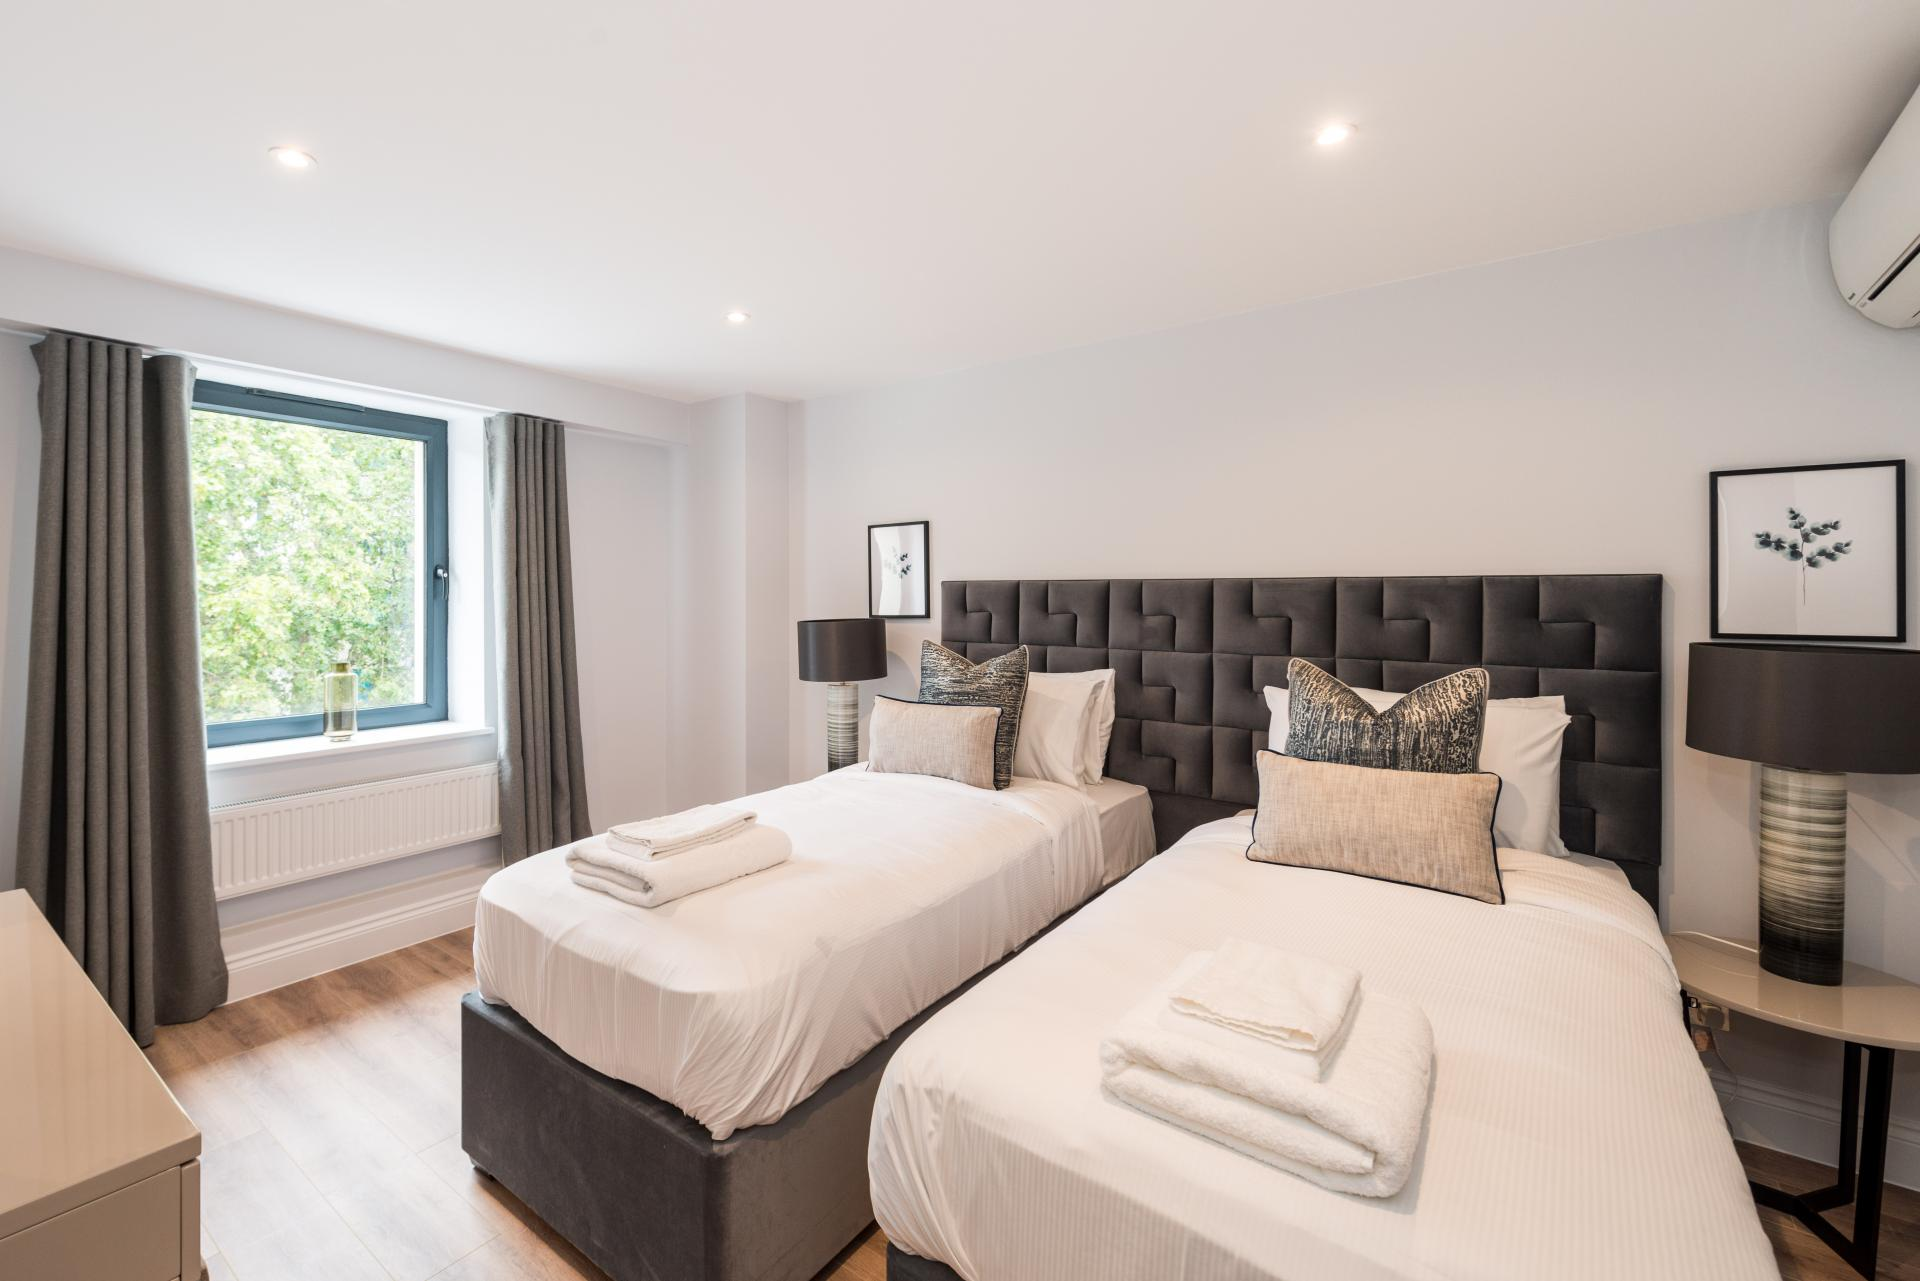 Bed at The Carlyle Serviced Apartments, Earls Court, London - Citybase Apartments